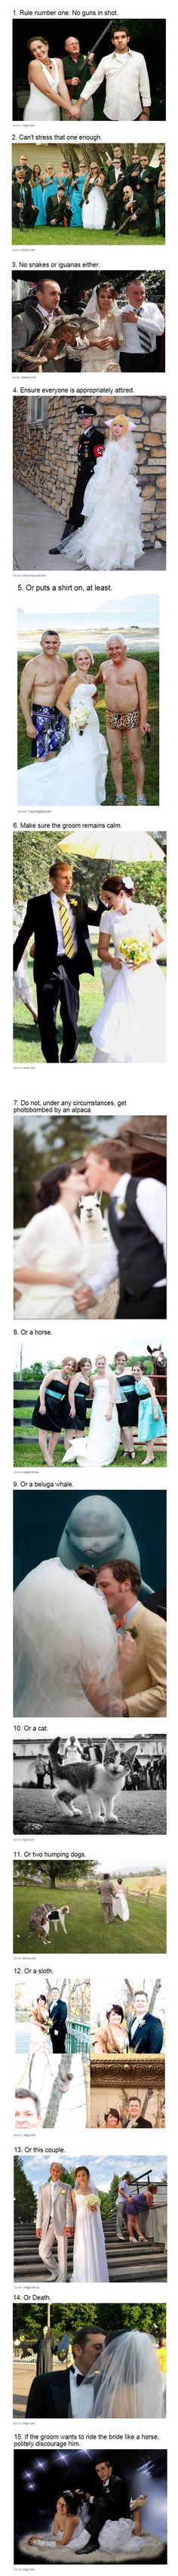 Ahh weddings xD